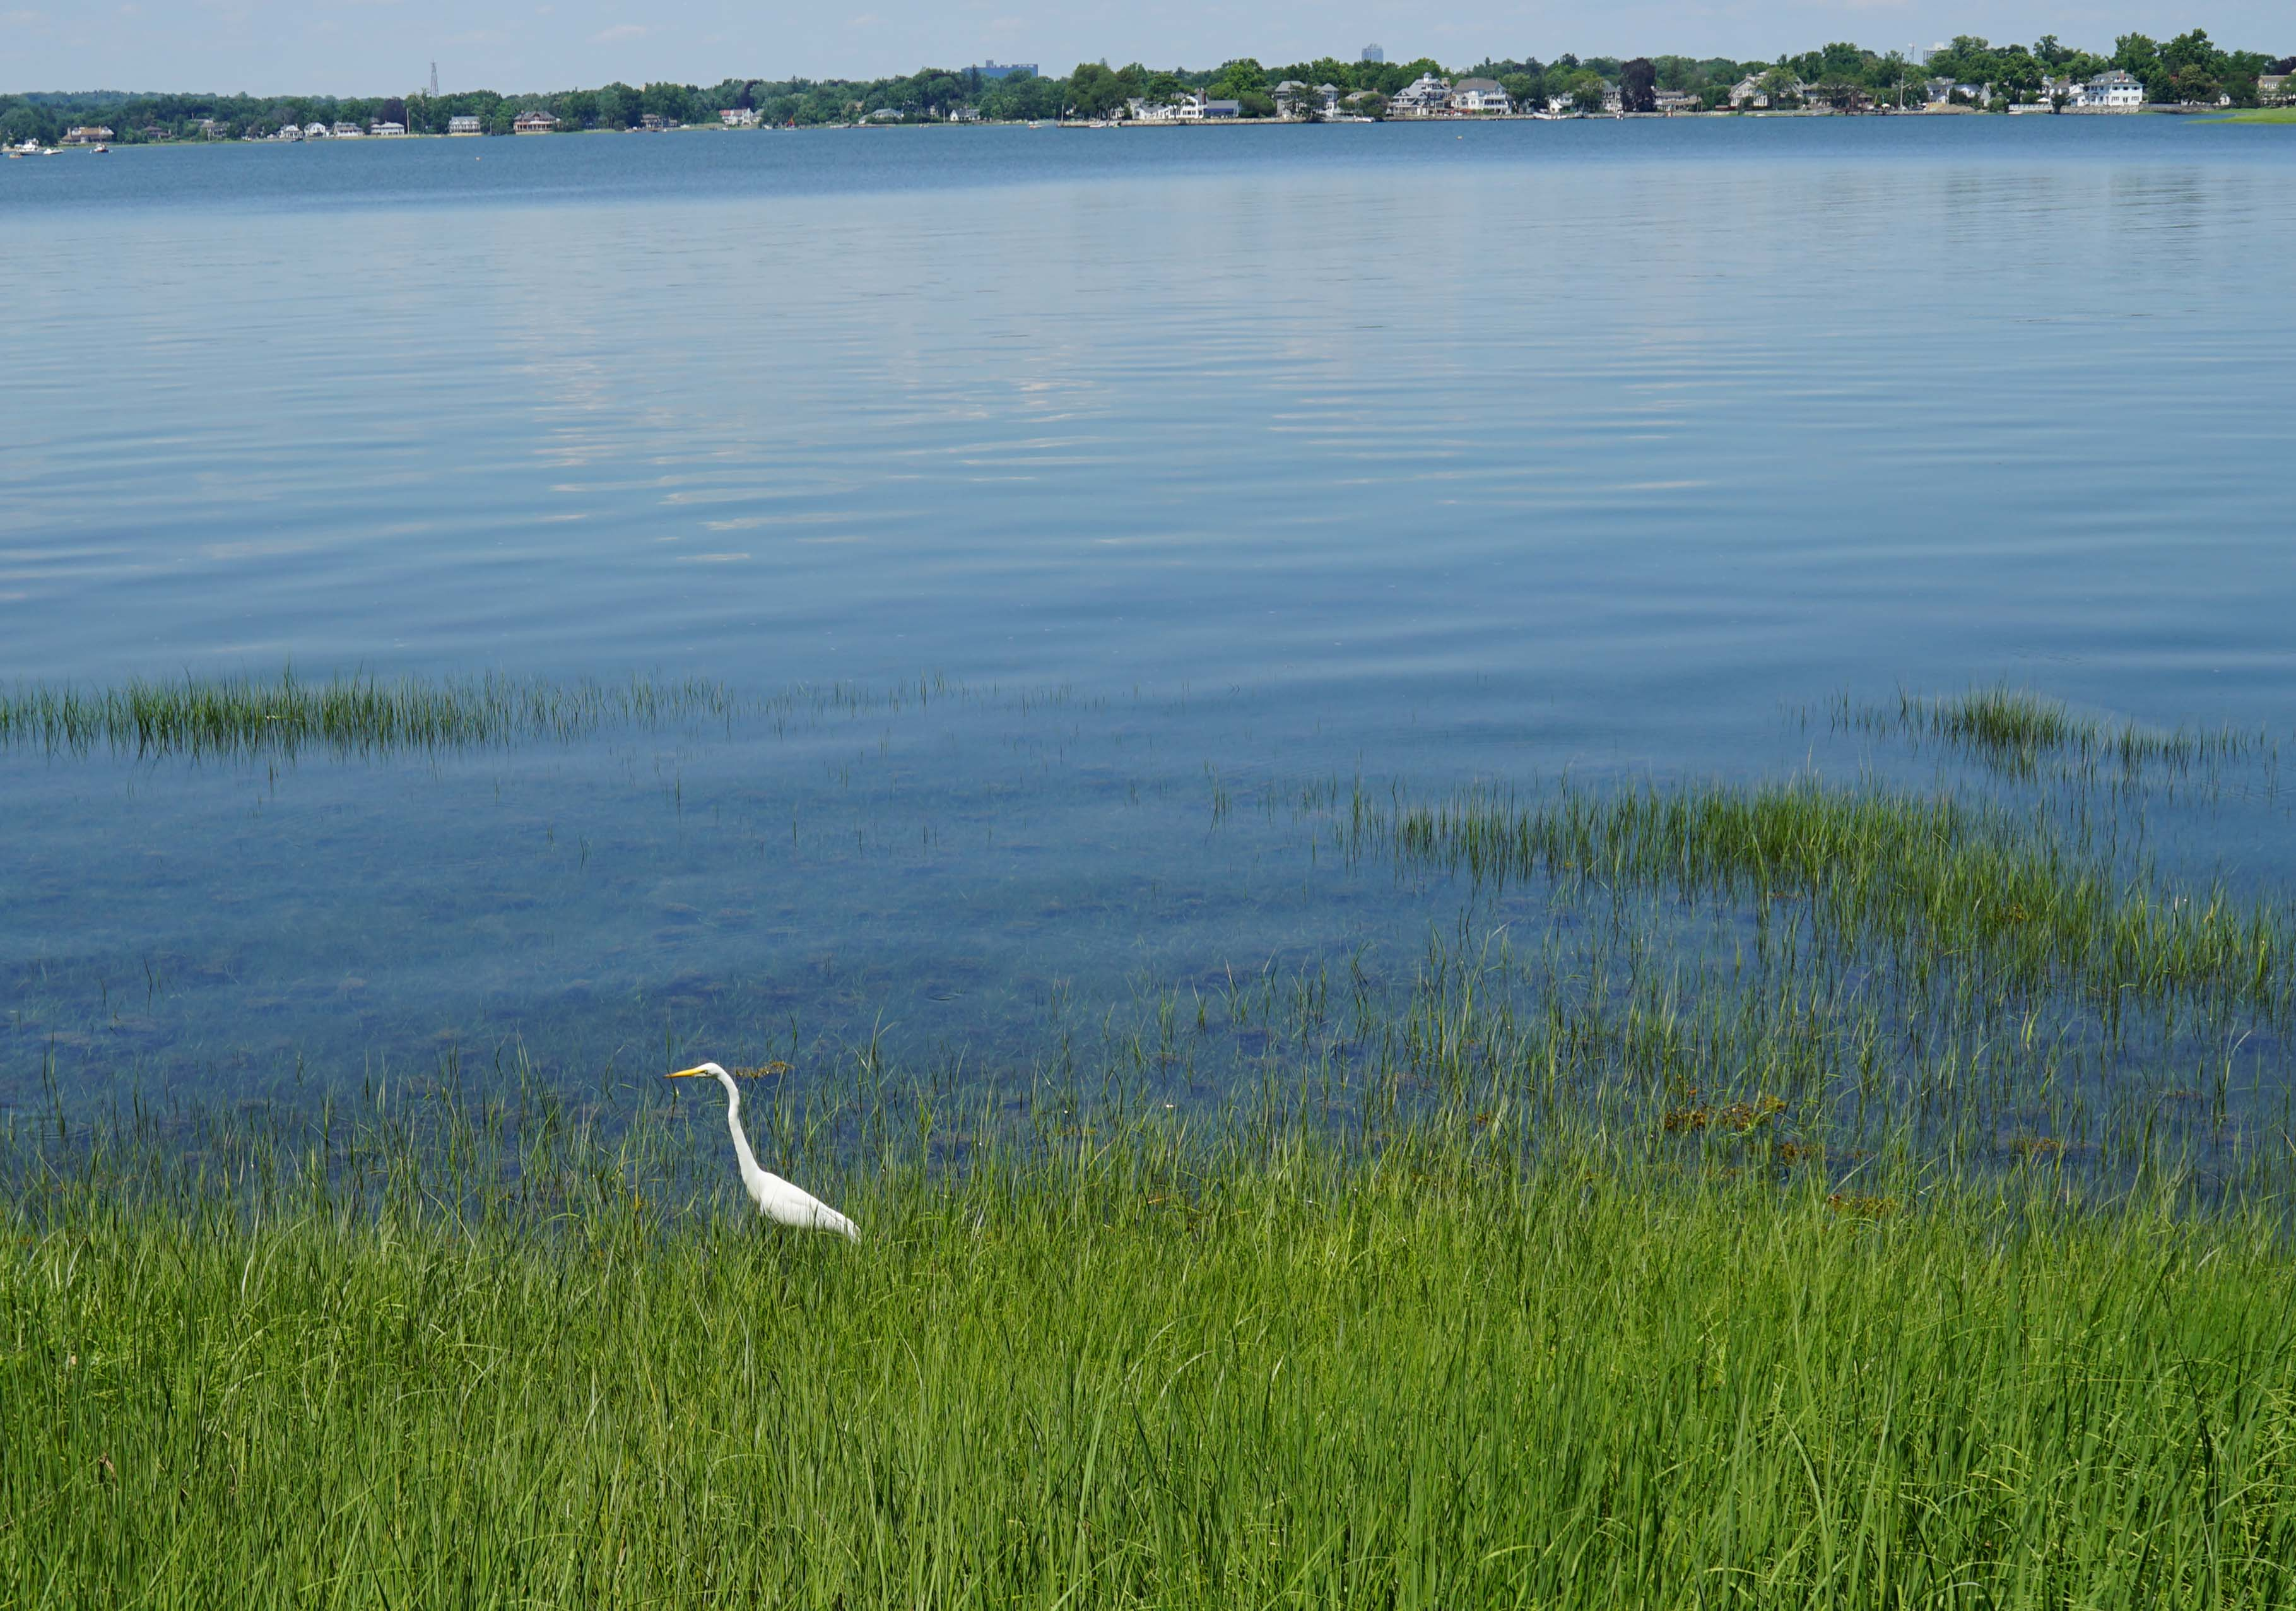 Tods point crane